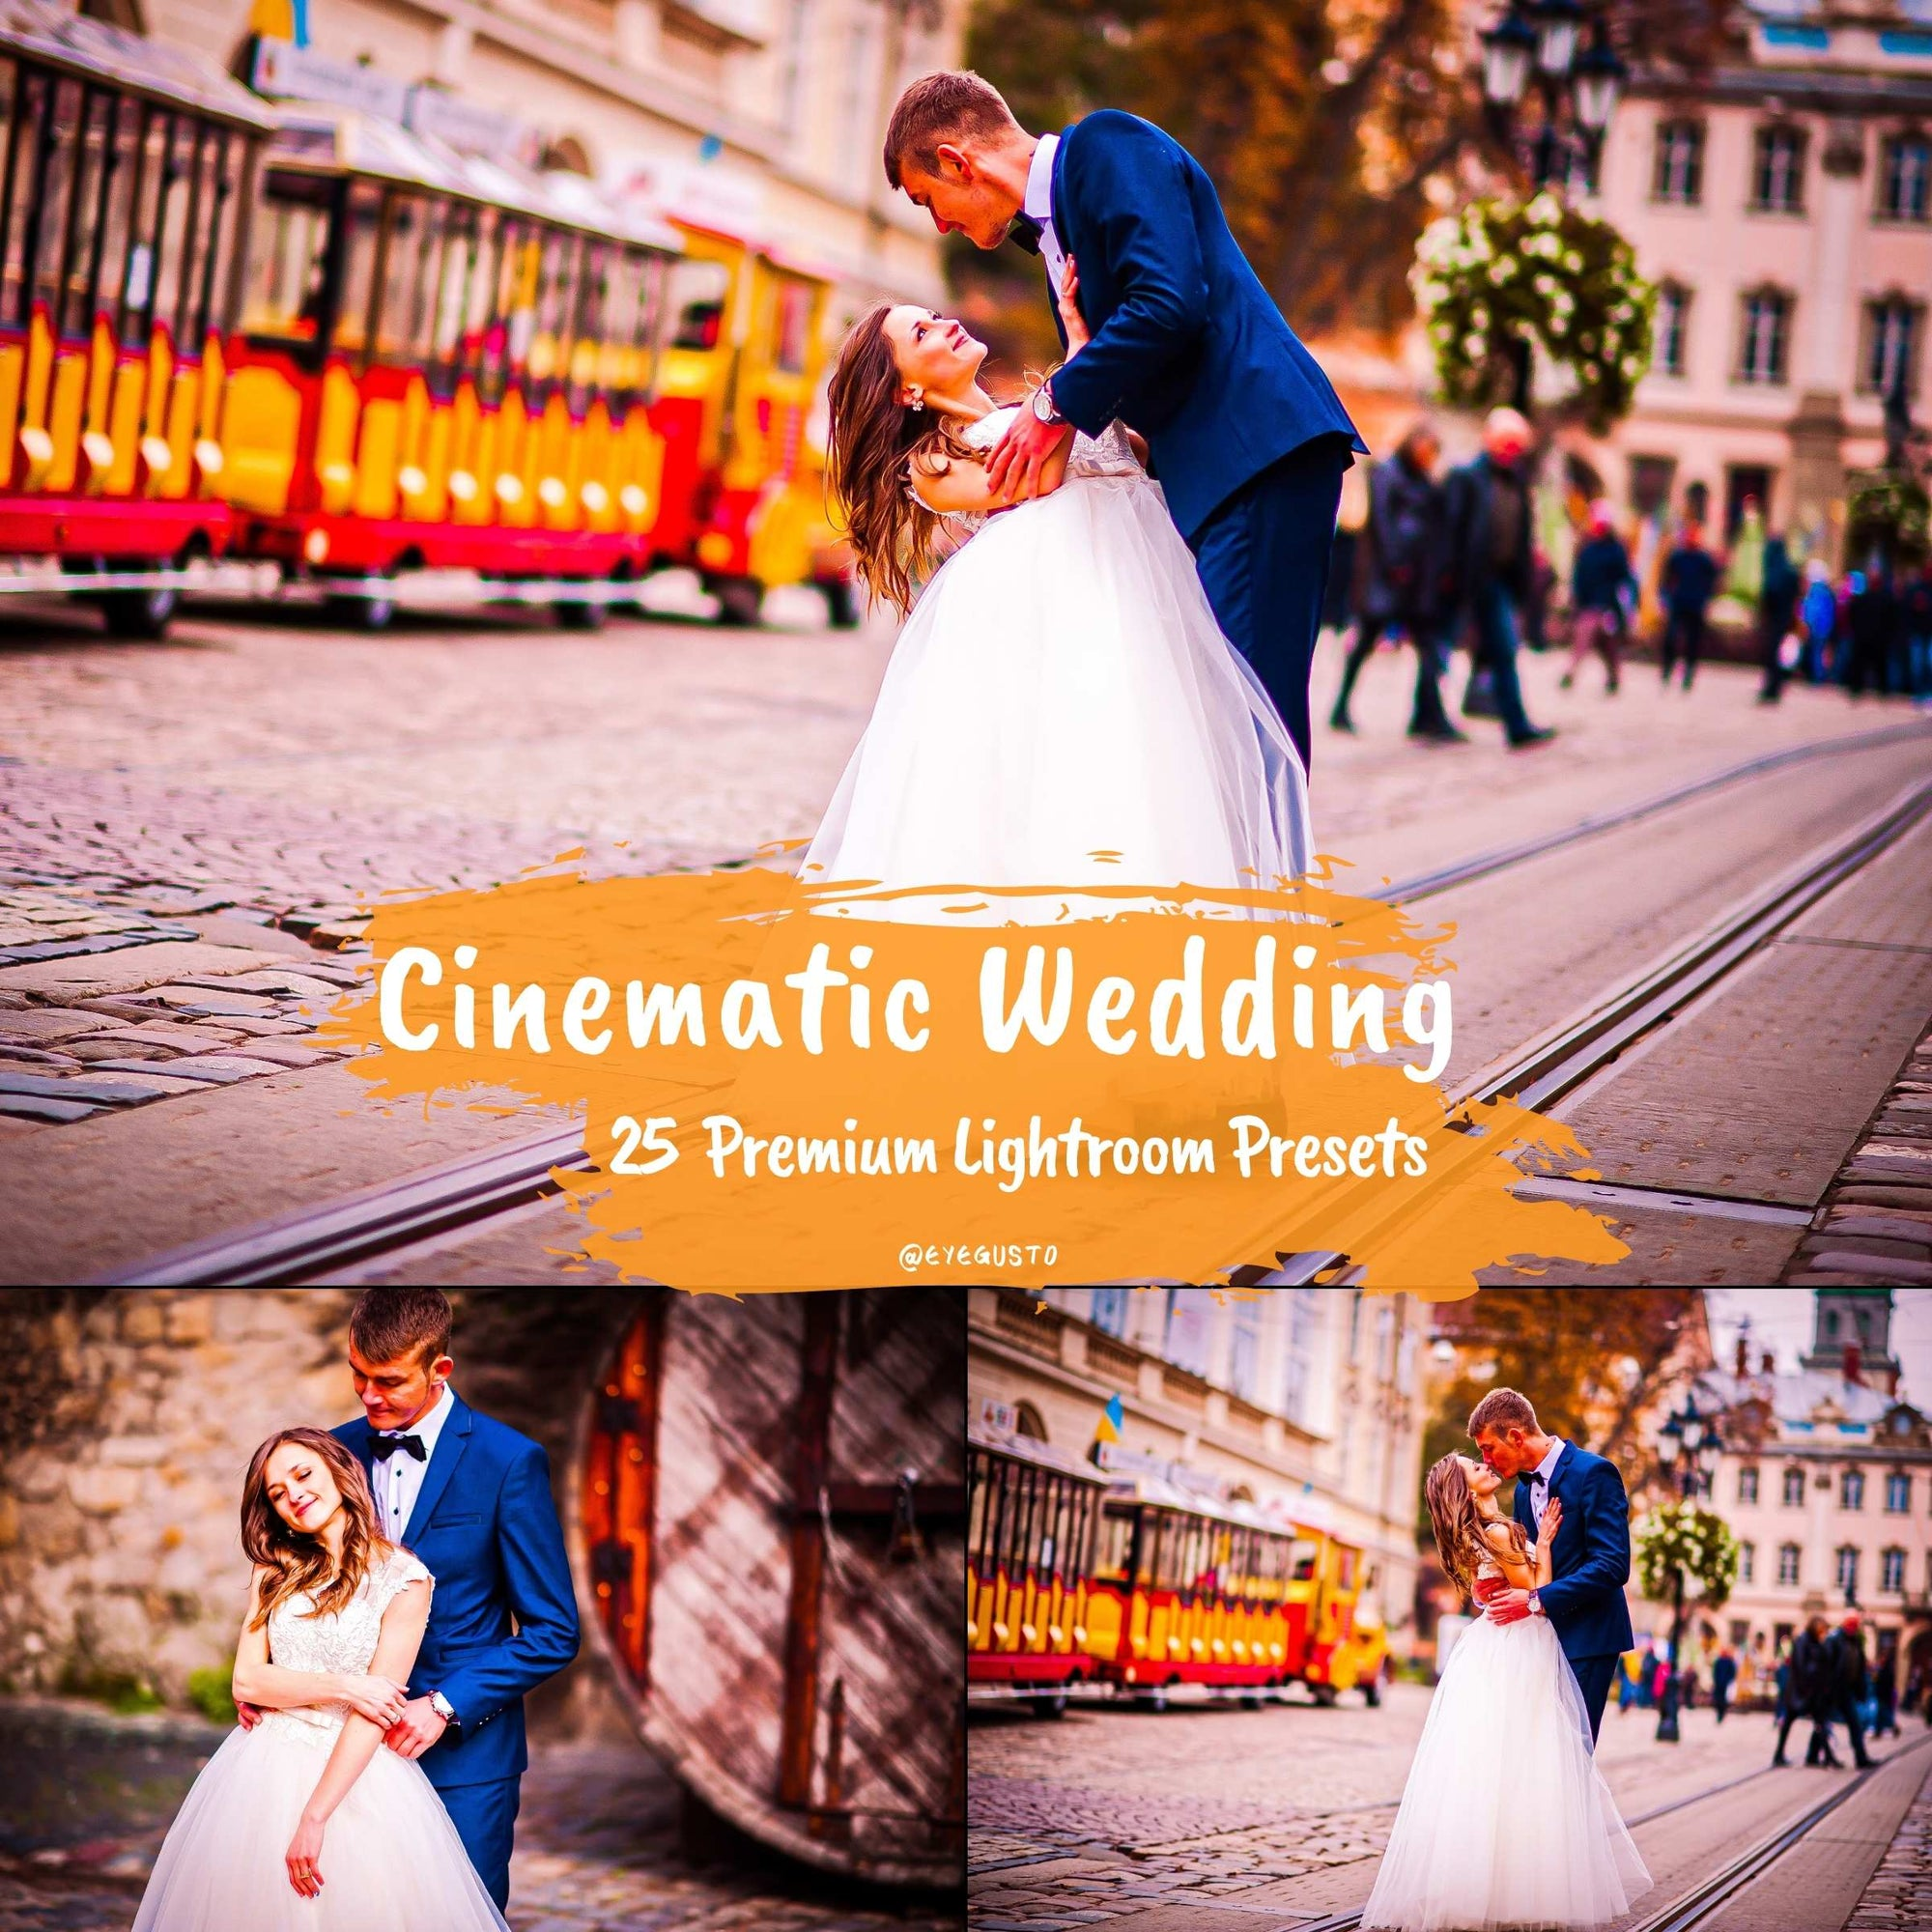 25 Wedding Lightroom Presets